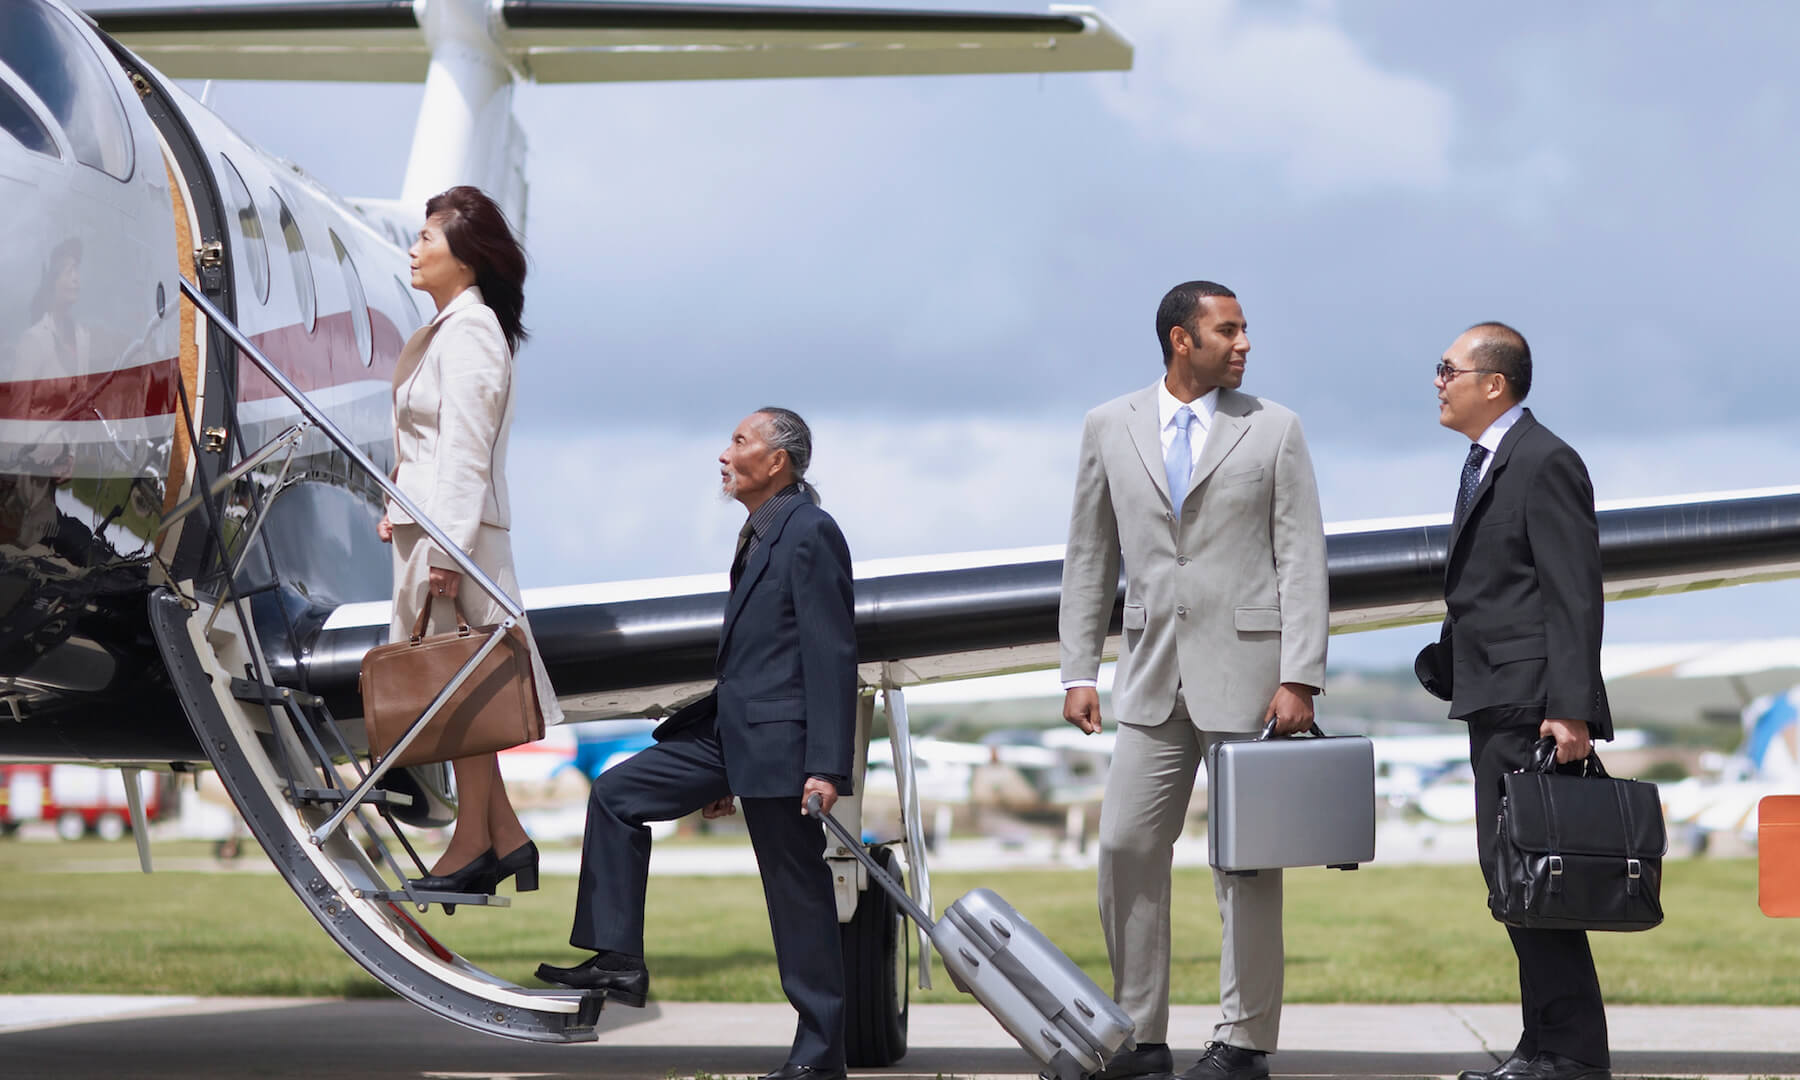 Businesspeople getting on airplane.